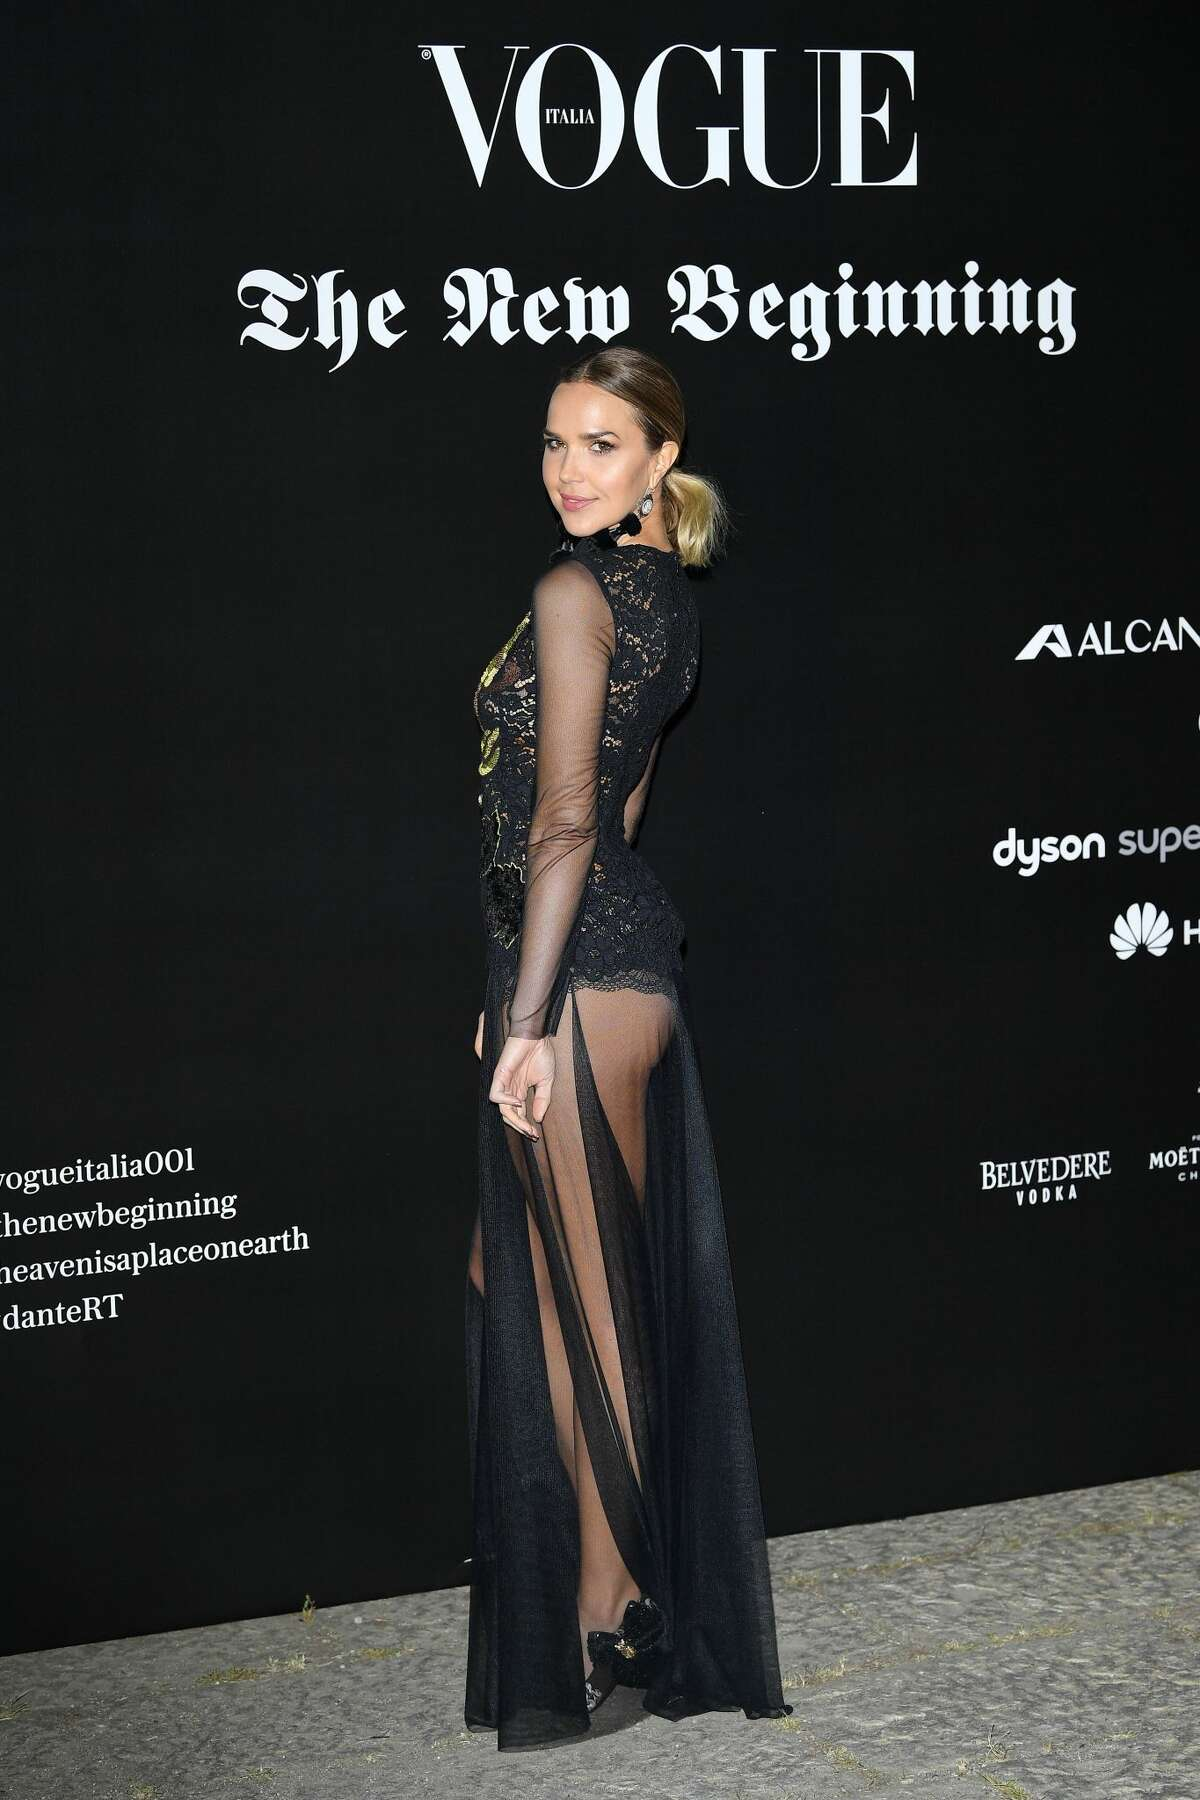 Arielle Kebbel attends theVogue Italia 'The New Beginning' Party during Milan Fashion Week Spring/Summer 2018 on September 22, 2017 in Milan, Italy.